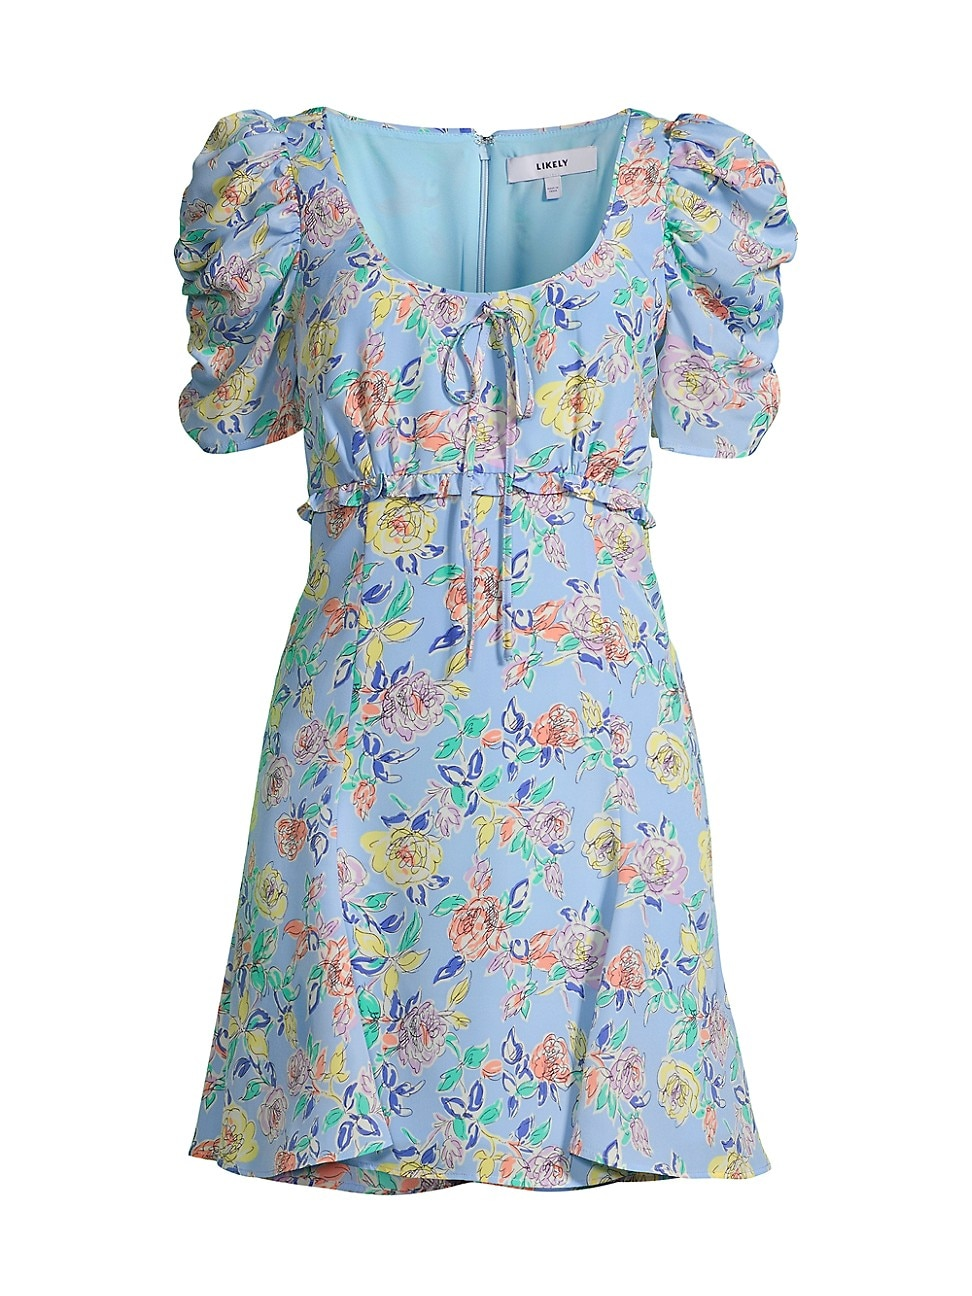 Likely Dresses WOMEN'S LANA FLORAL MINI A-LINE DRESS